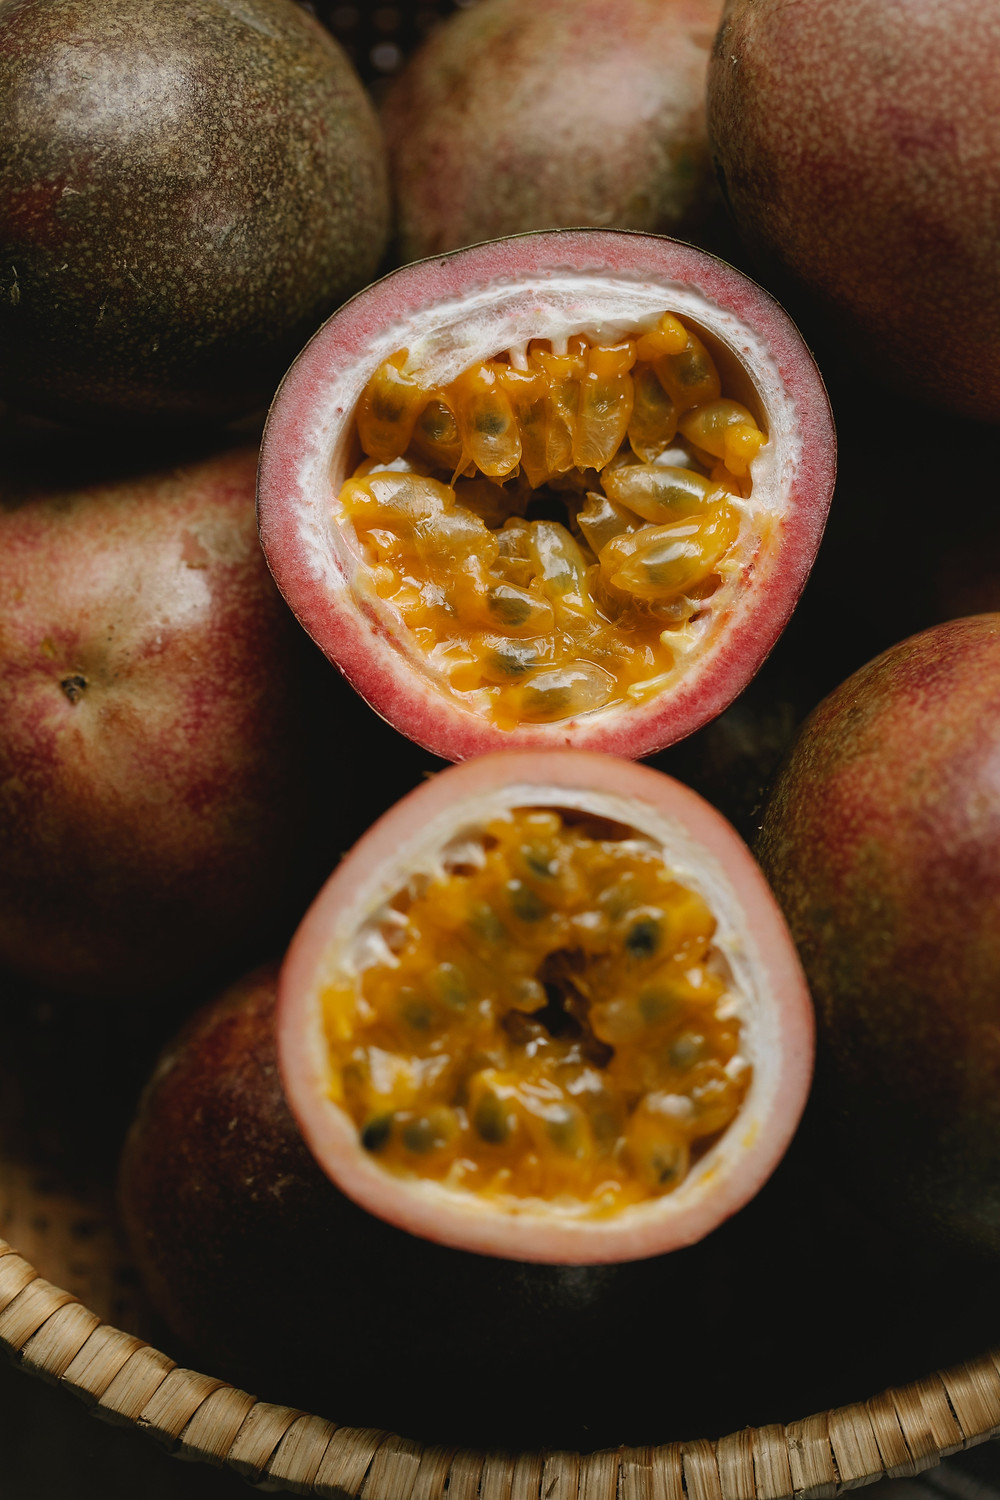 passionfruit cut in half / fully grown